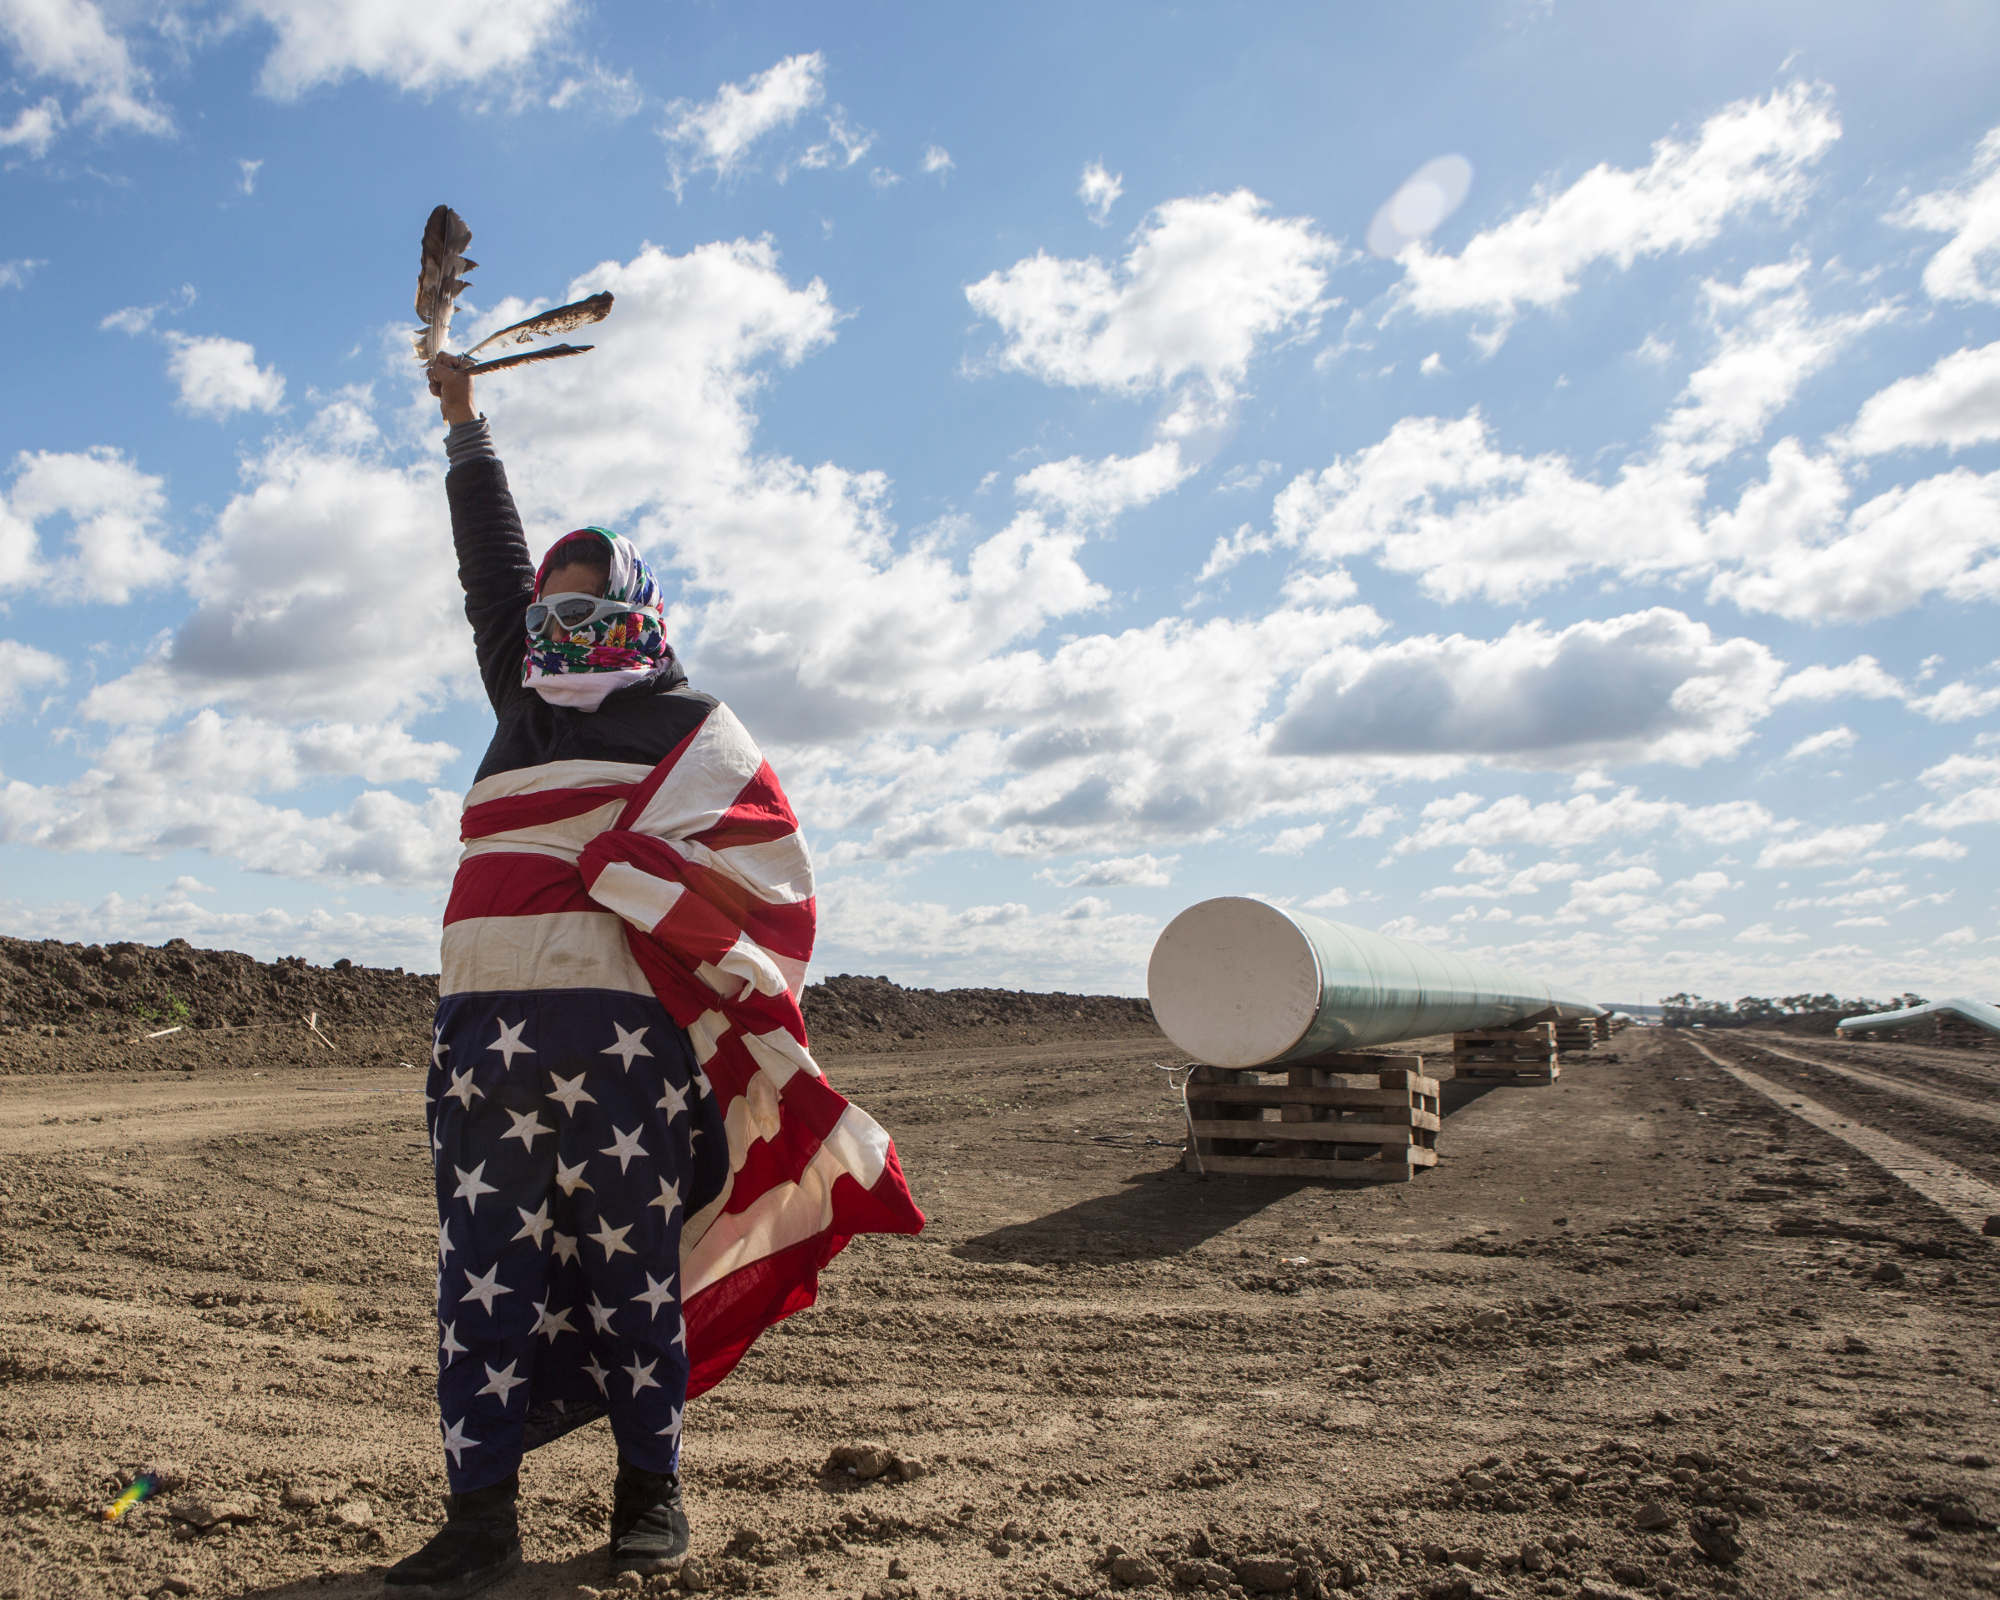 standing rock indian reservation essay Covering 23 million acres, the standing rock indian reservation is the fifth largest reservation in the united states it stretches across the expansive tall grass plains, rolling hills.